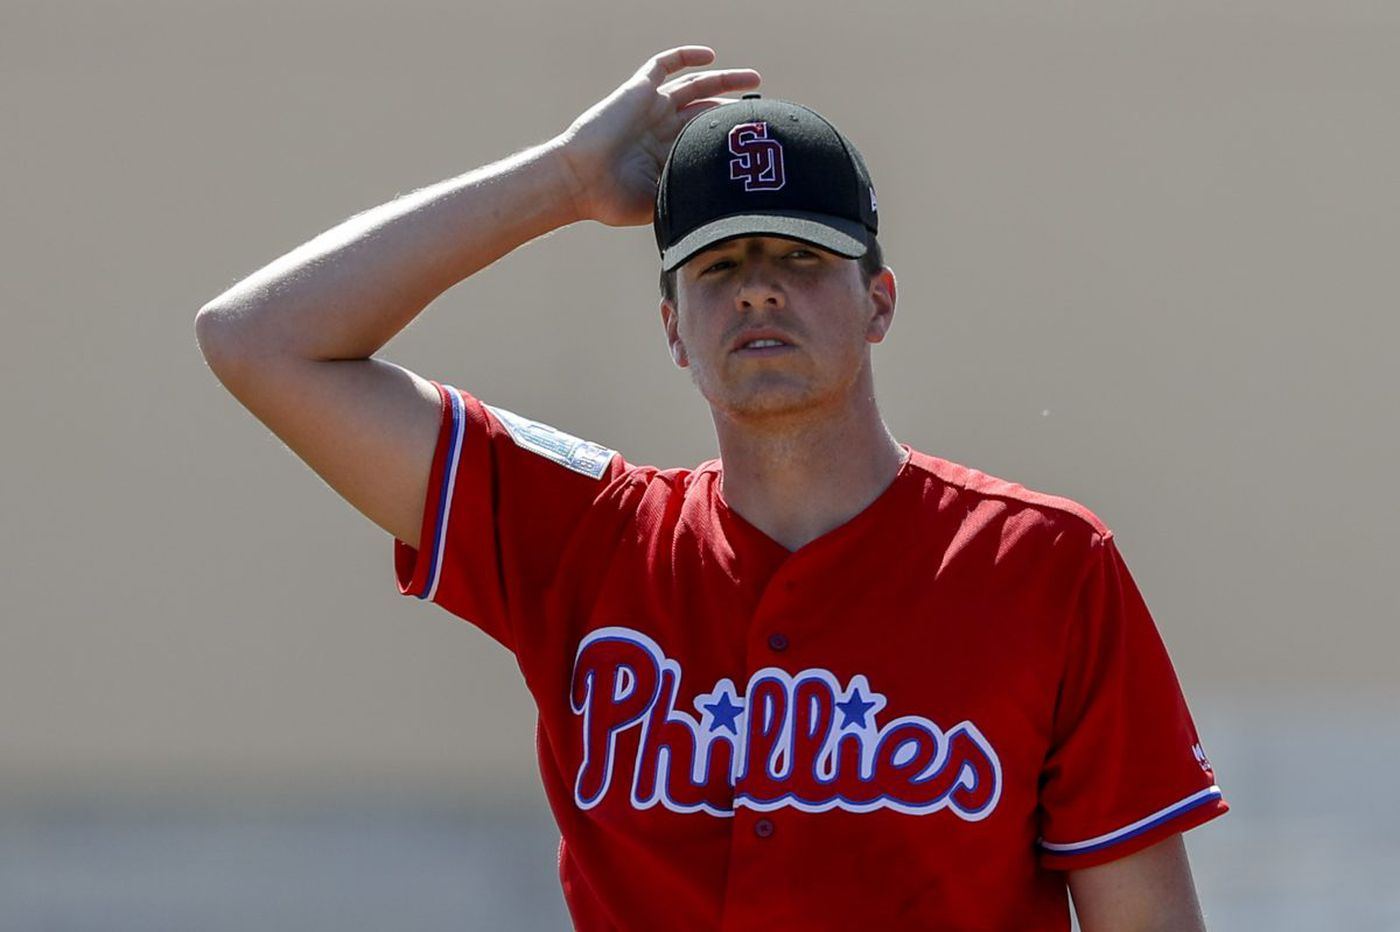 Phillies fall to Blue Jays in Grapefruit League opener